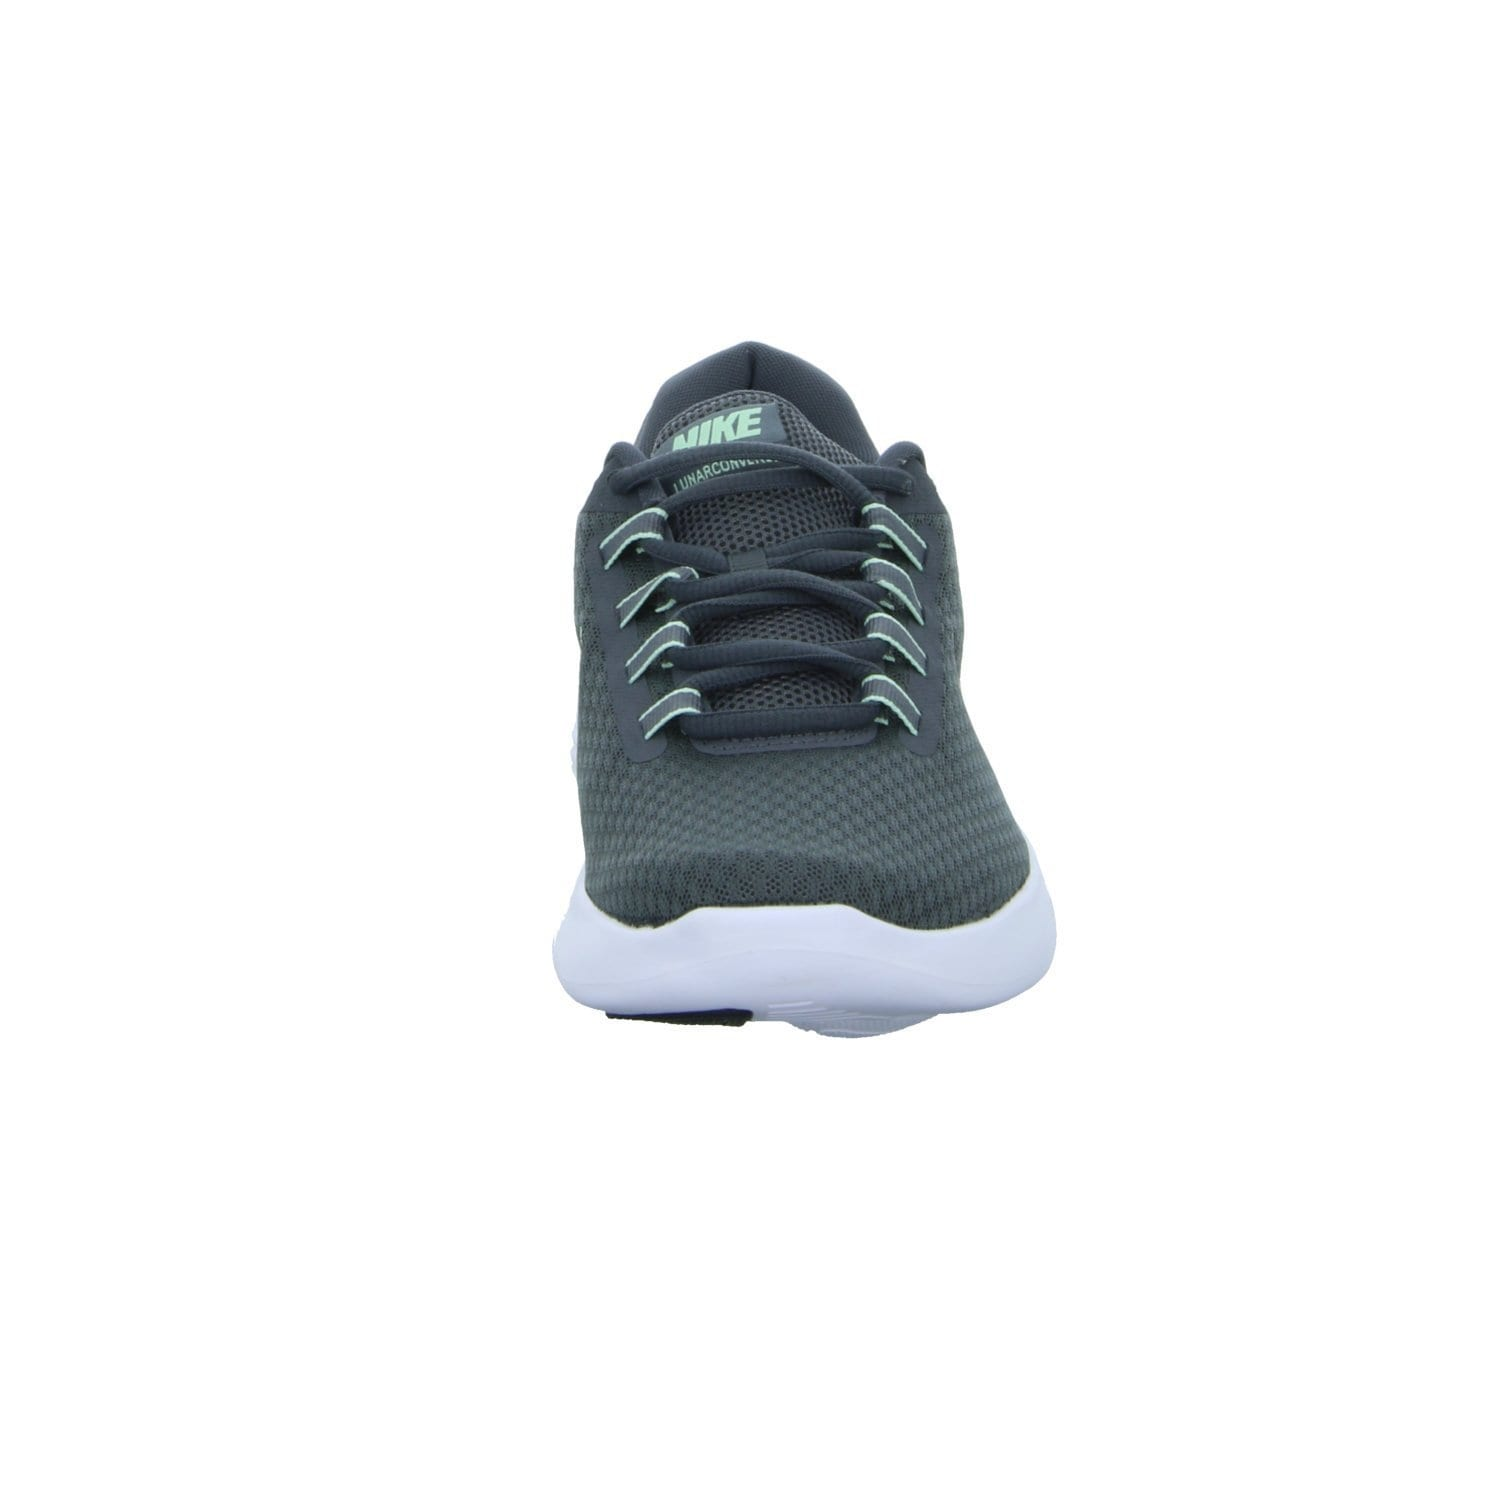 hot sale online 7f509 92fcf ... new style shop nike lunar converge dark grey fresh mint cool grey white  womens shoes ships